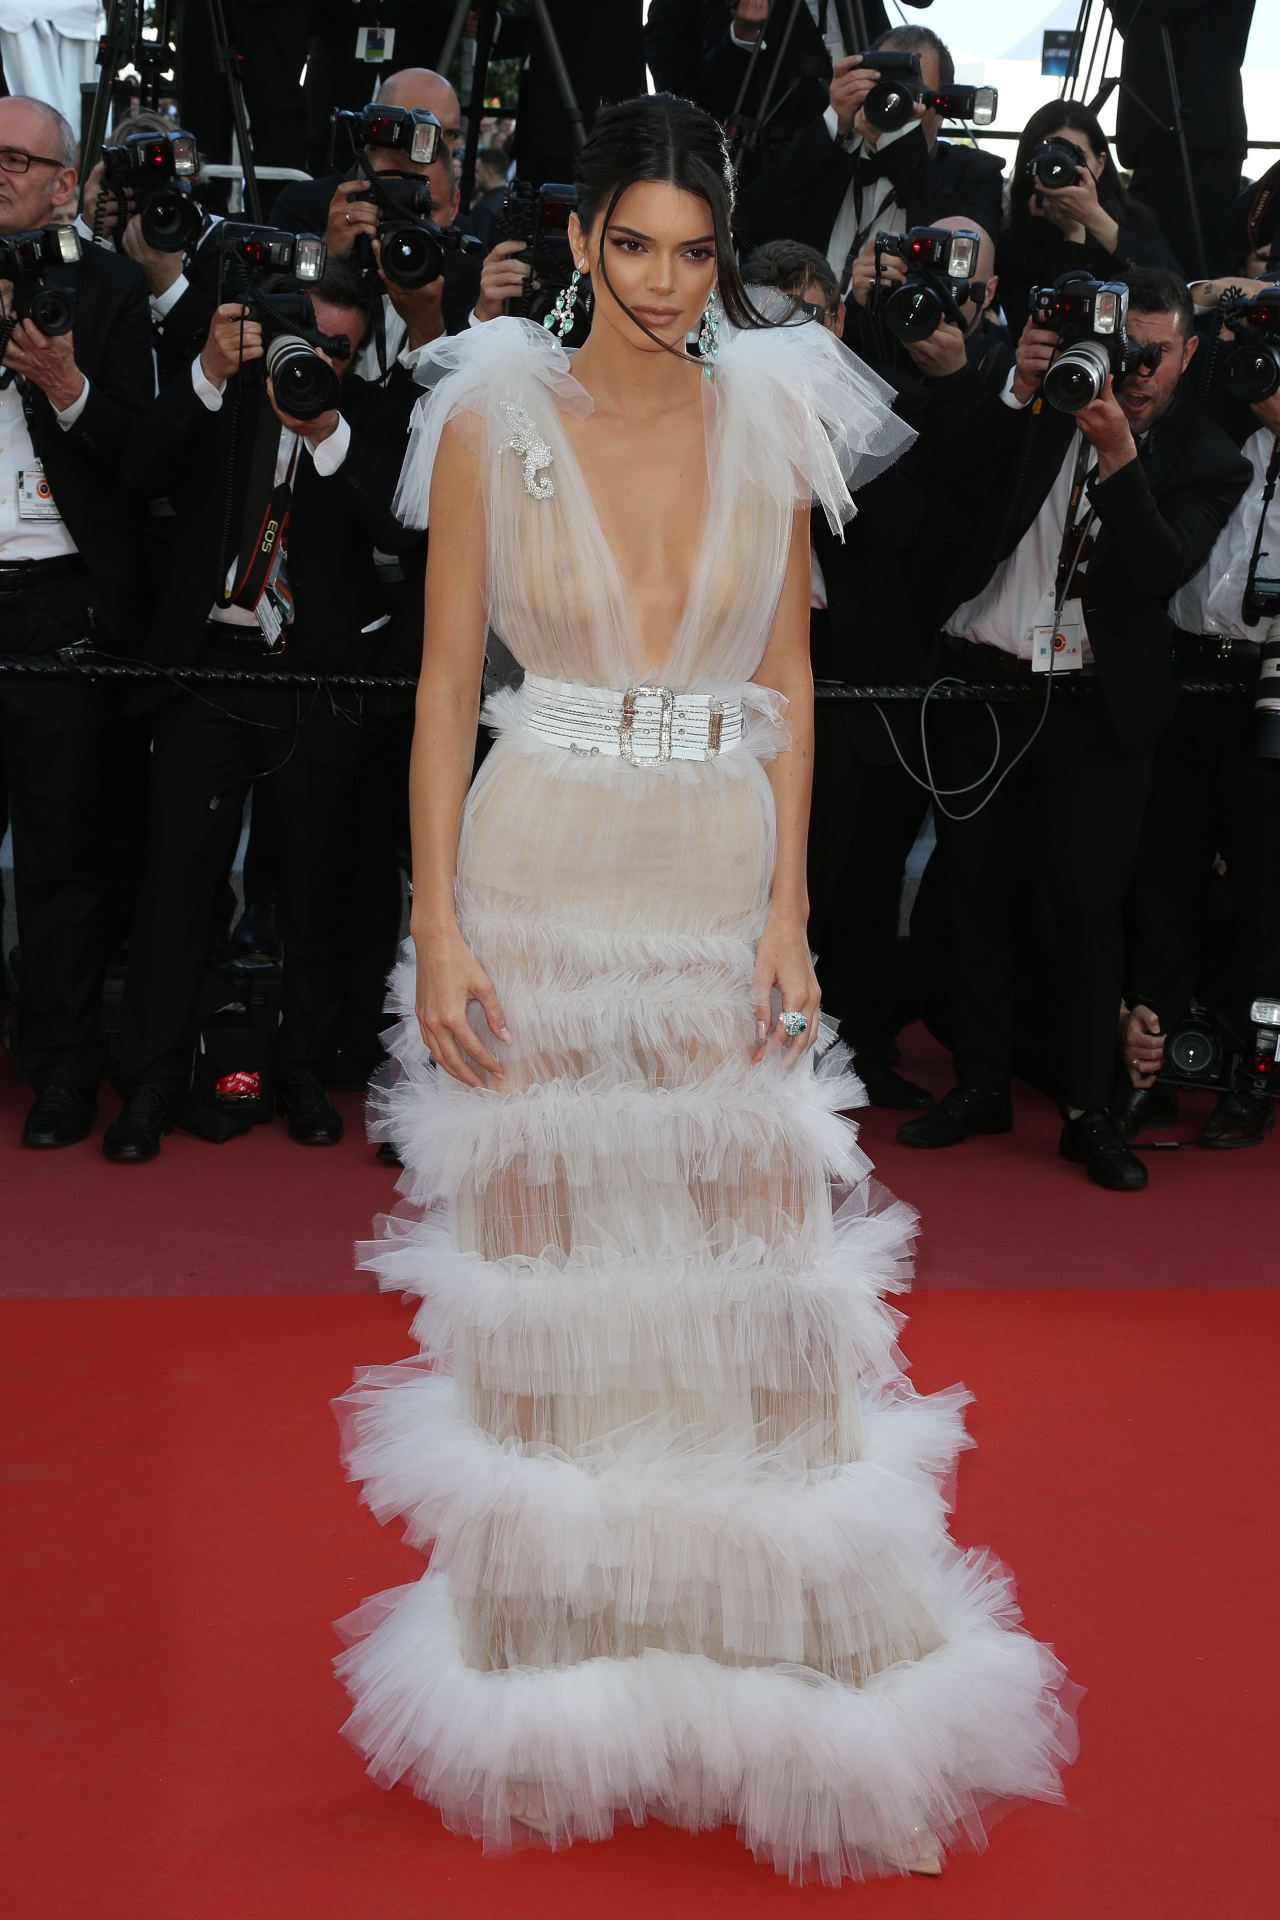 Kendall Jenner on the red carpet at Cannes Film Festival in 2018. Image credit: Getty Images